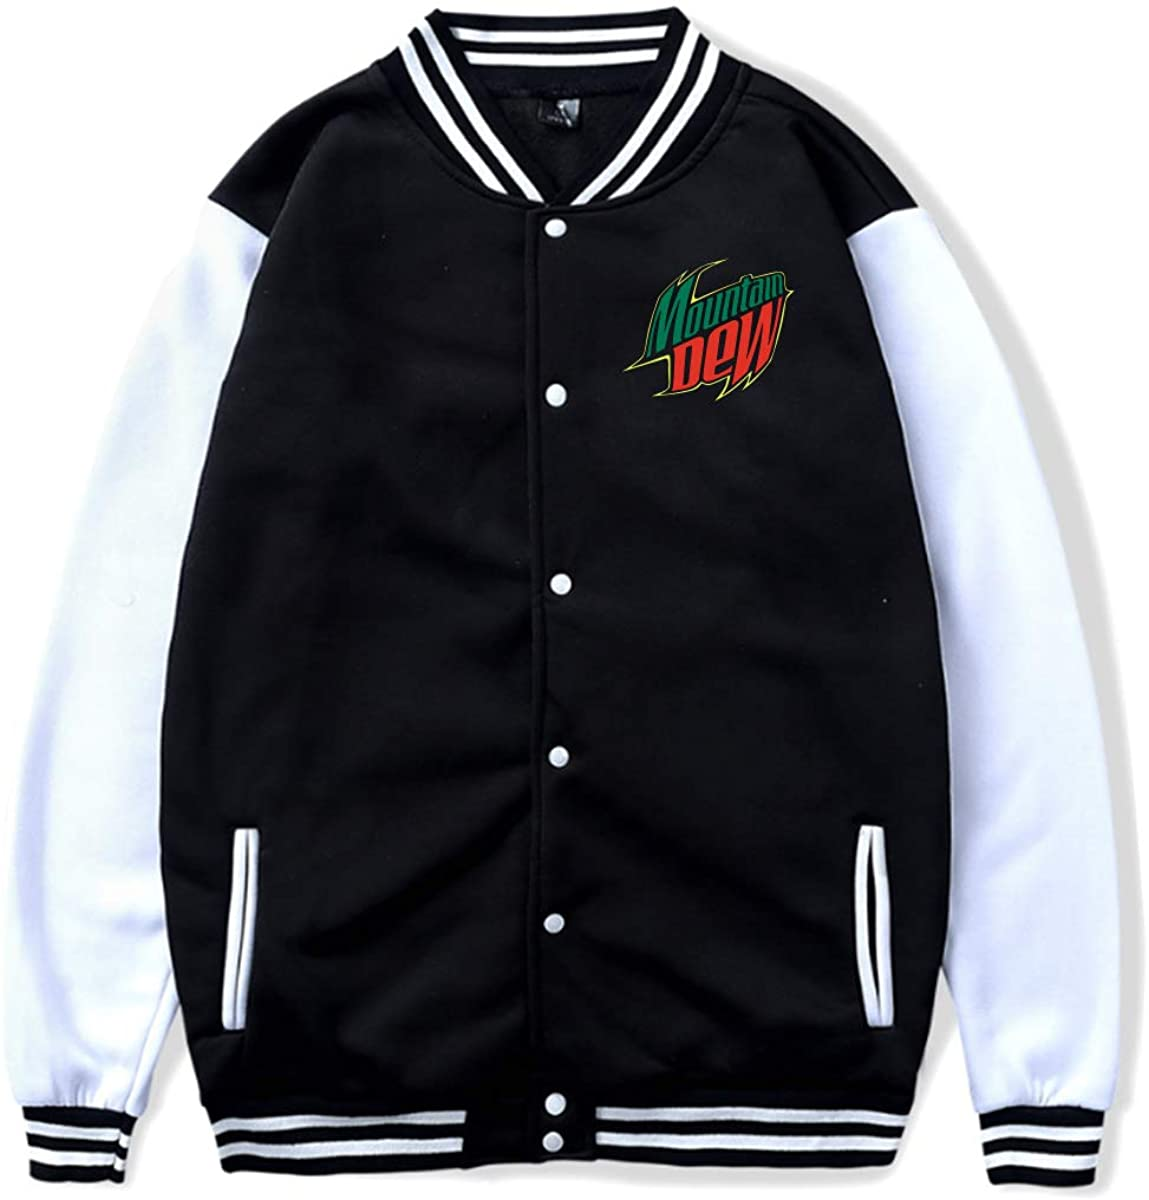 Mountain Dew Baseball Uniform Front Pockets On Both Sides Cuffs Hem and Neckline Contrast Thread Jacket Sport Coat